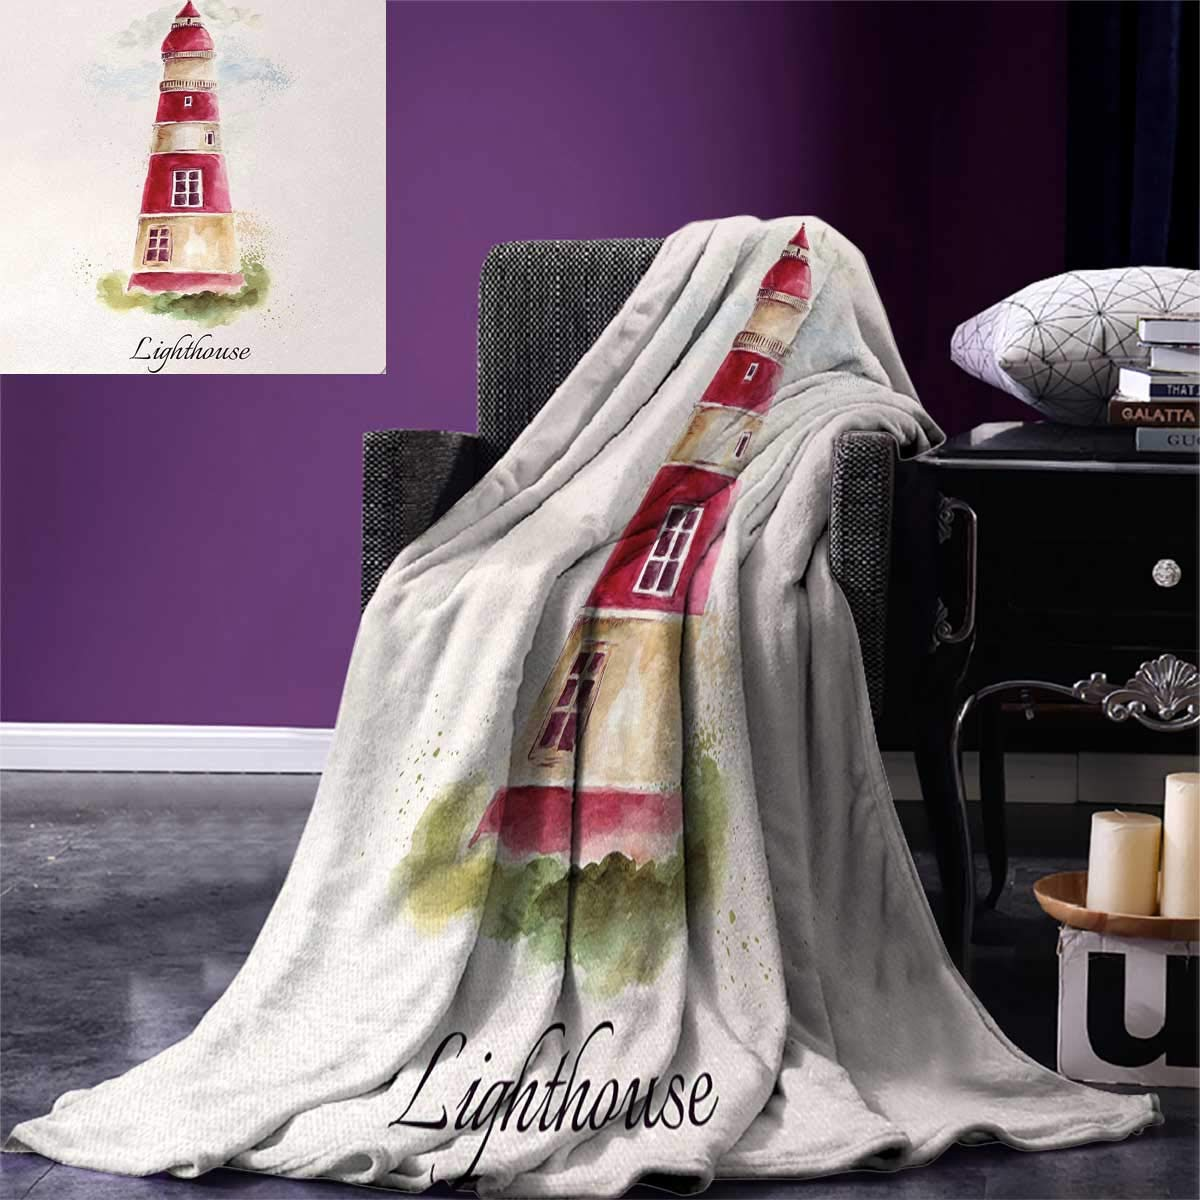 smallbeefly Lighthouse Digital Printing Blanket Watercolor Lighthouse Print Pastel Faded Vintage Lettering Windows Grass Clouds Summer Quilt Comforter 80''x60'' Multicolor